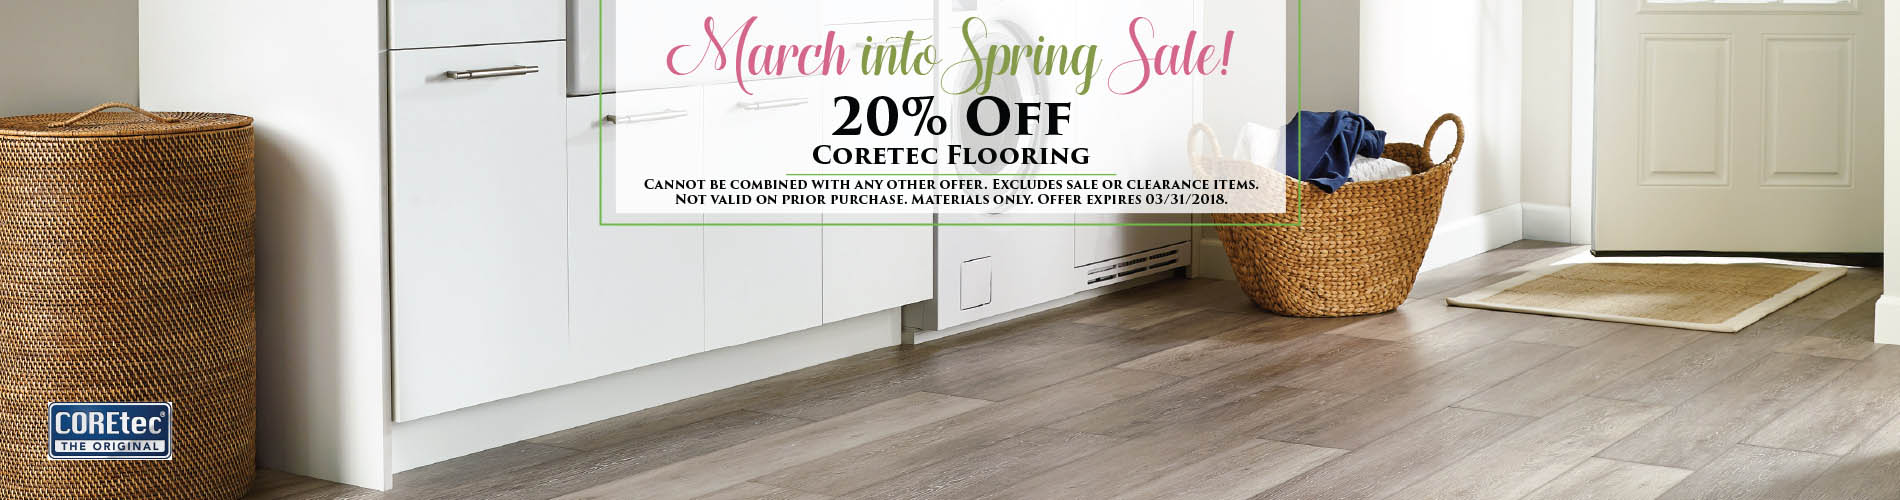 March into Spring Sale! 20% OFF COREtec flooring!